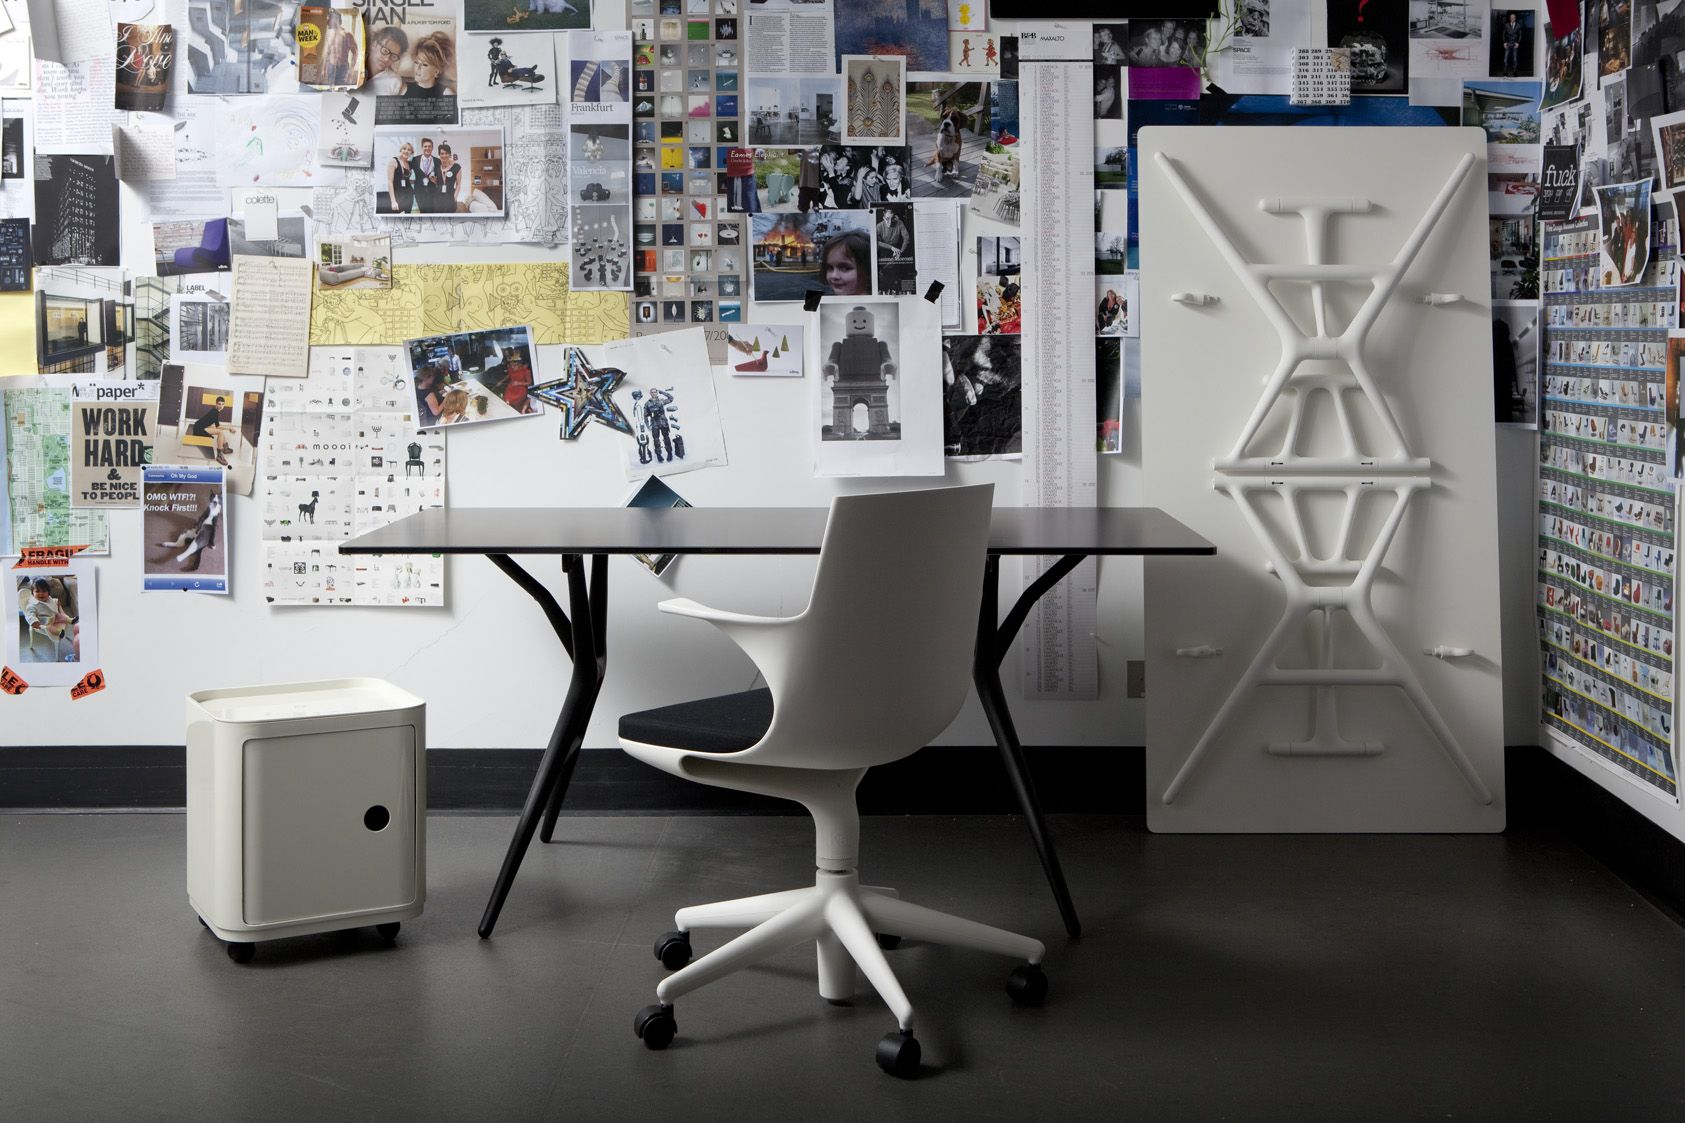 Kartell Complete Office Package 1 X Spoon Table 160 Cm White Or Black 1 X Spoon Chair White Or Blac Modern Home Offices Furniture Home Office Furniture